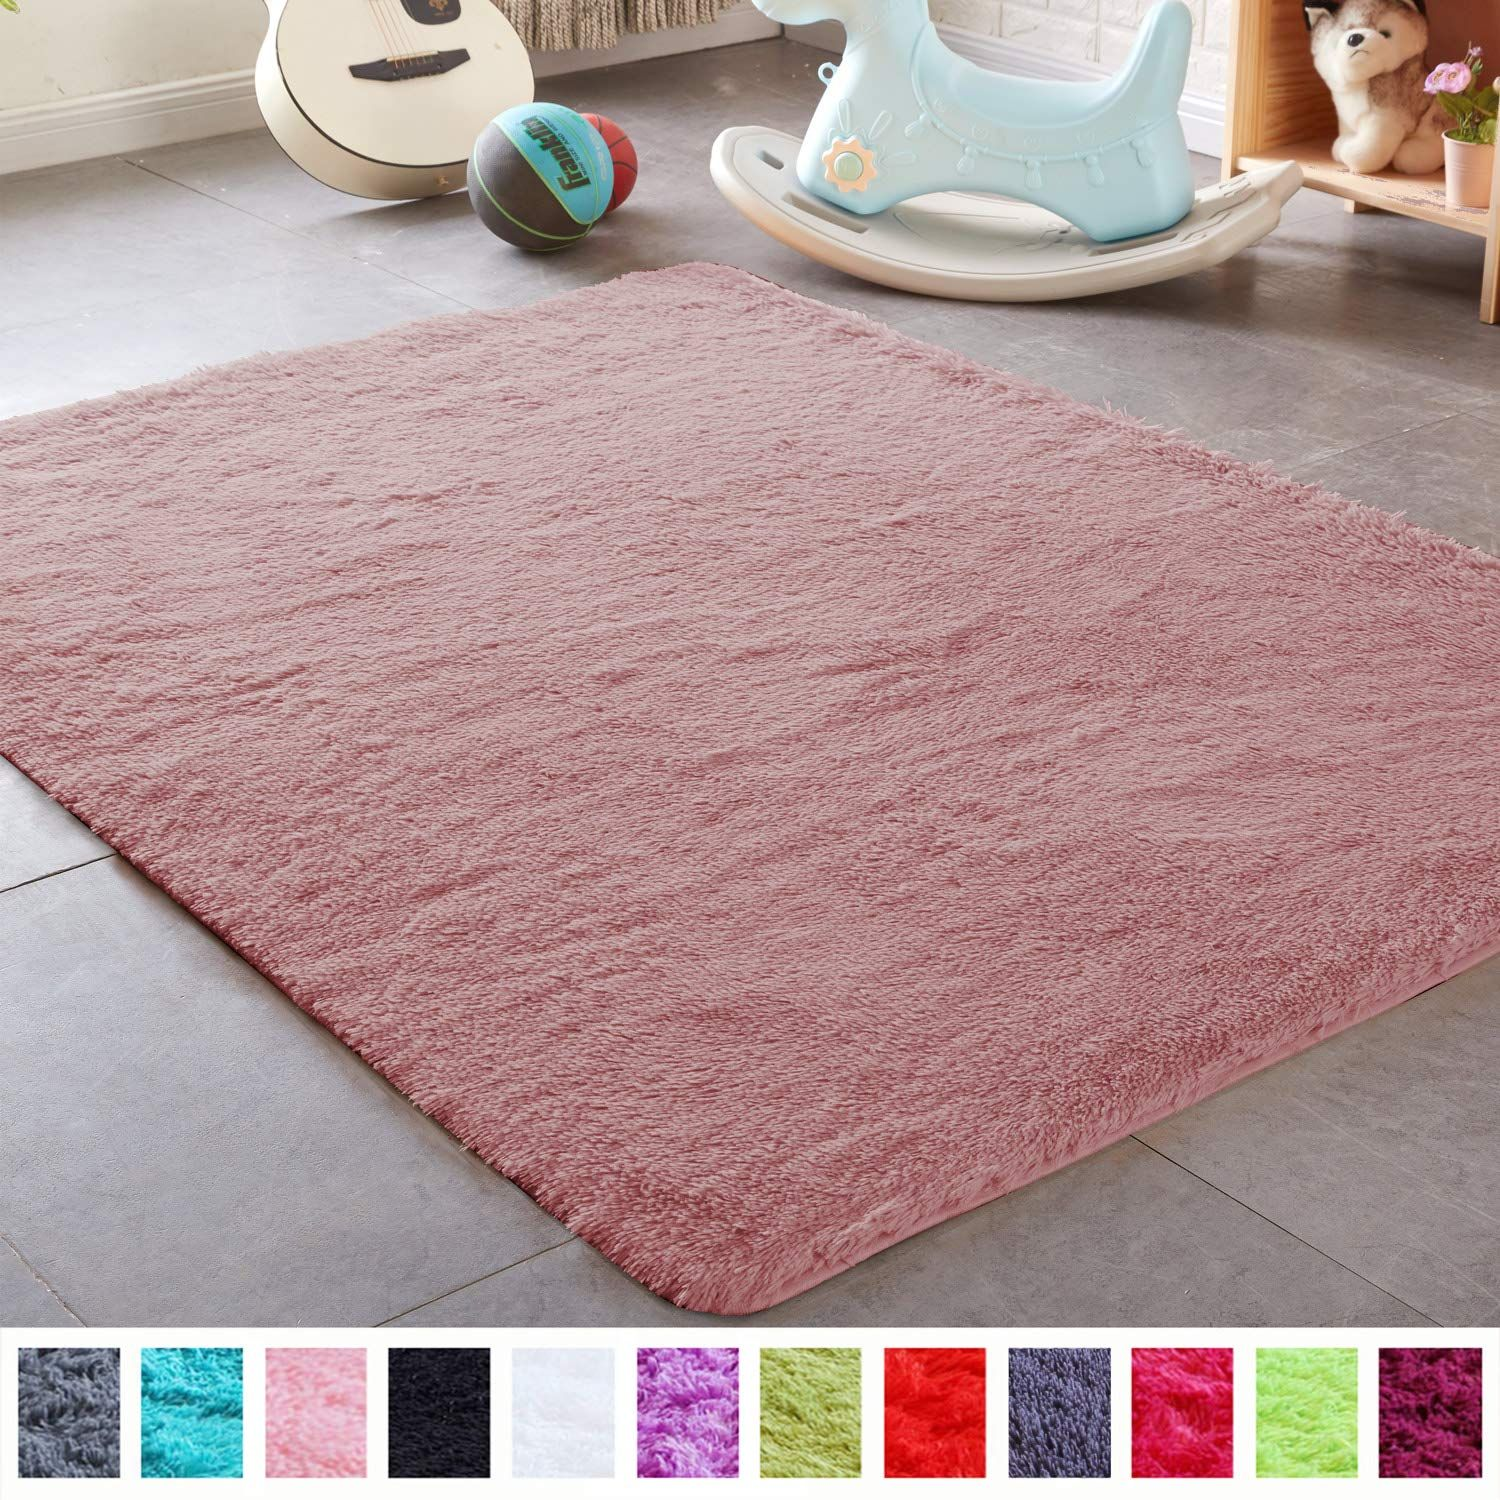 Pagisofe Shaggy Fluffy Area Rugs Carpets For Baby Nursery Teens Girls Rooms 4x5 3 Feet Plush Fuzzy Shag Rugs For K In 2020 Kids Bedroom Carpet Rugs On Carpet Rug Decor